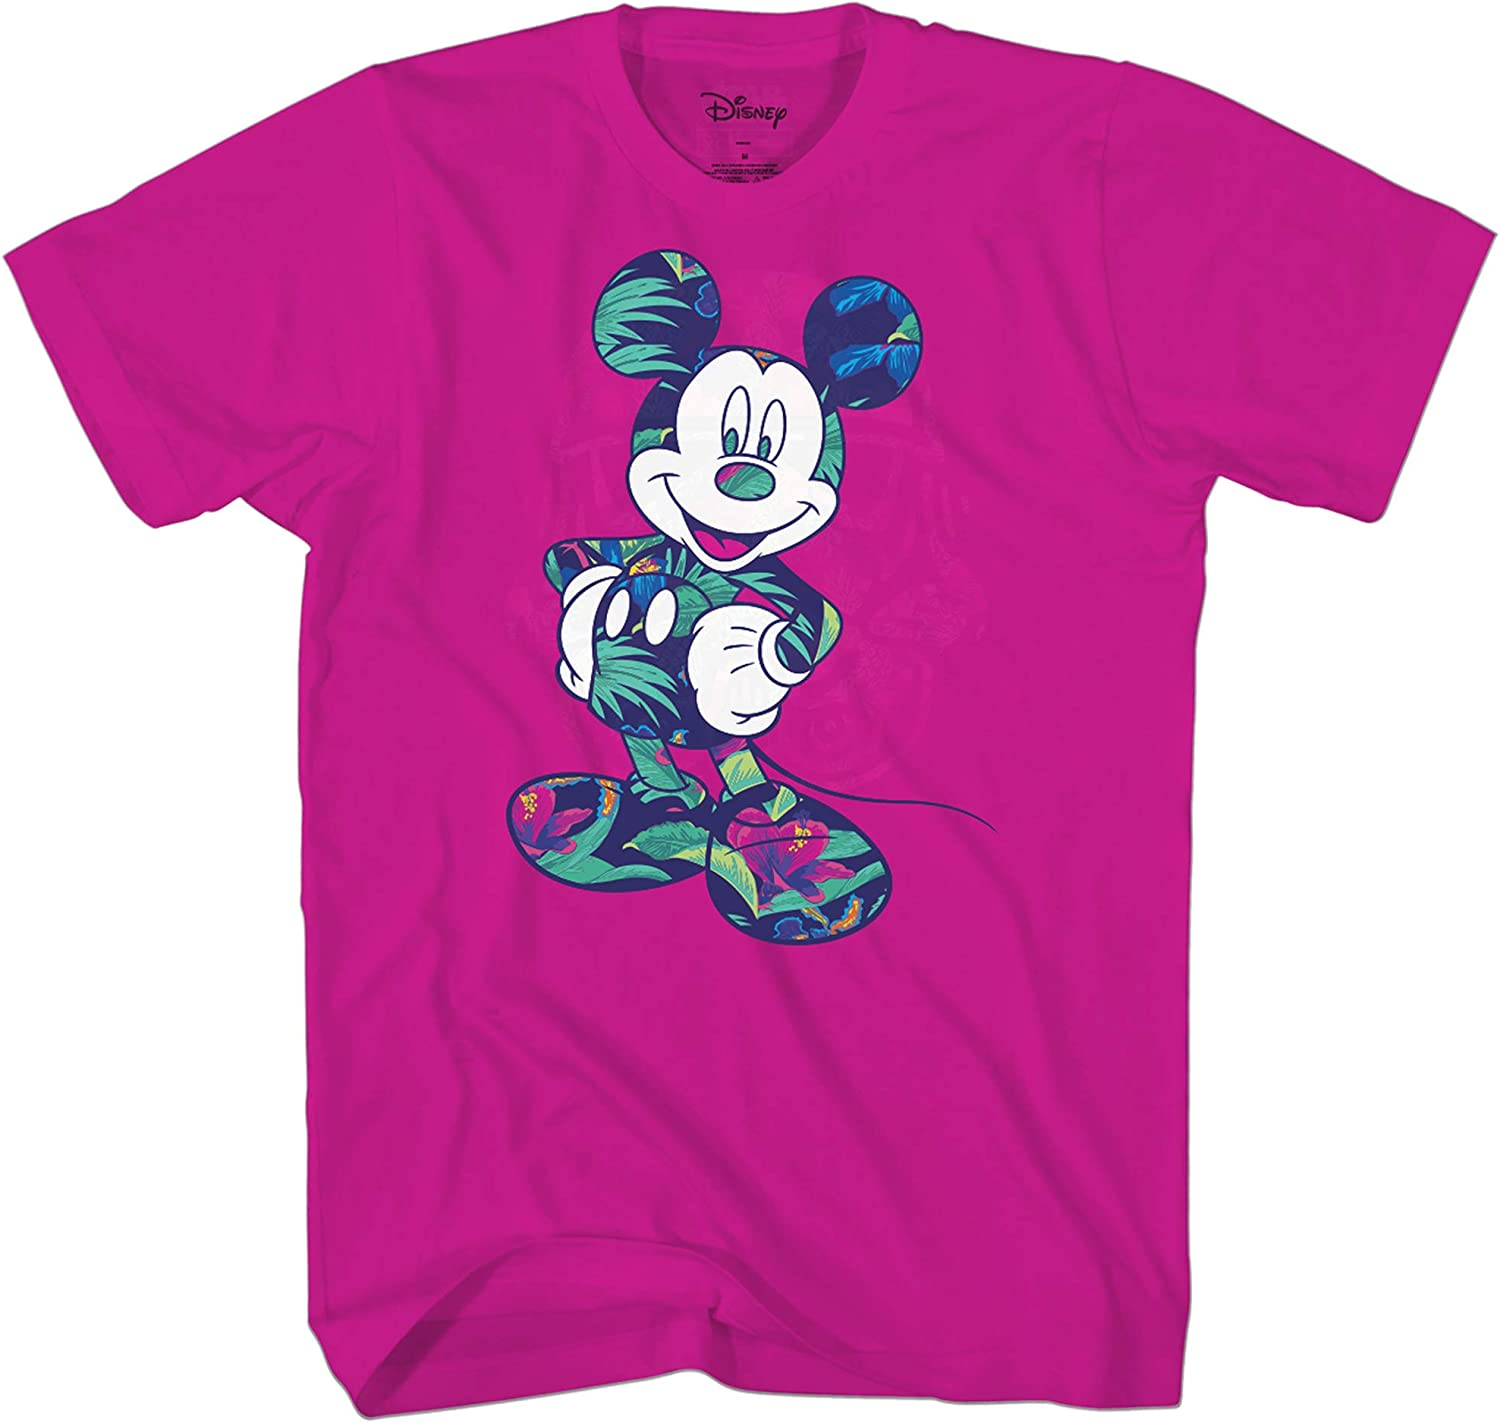 Disney Mickey Mouse Tropical Wash Disneyland World Funny Humor Adult Tee Graphic T-Shirt for Men Tshirt